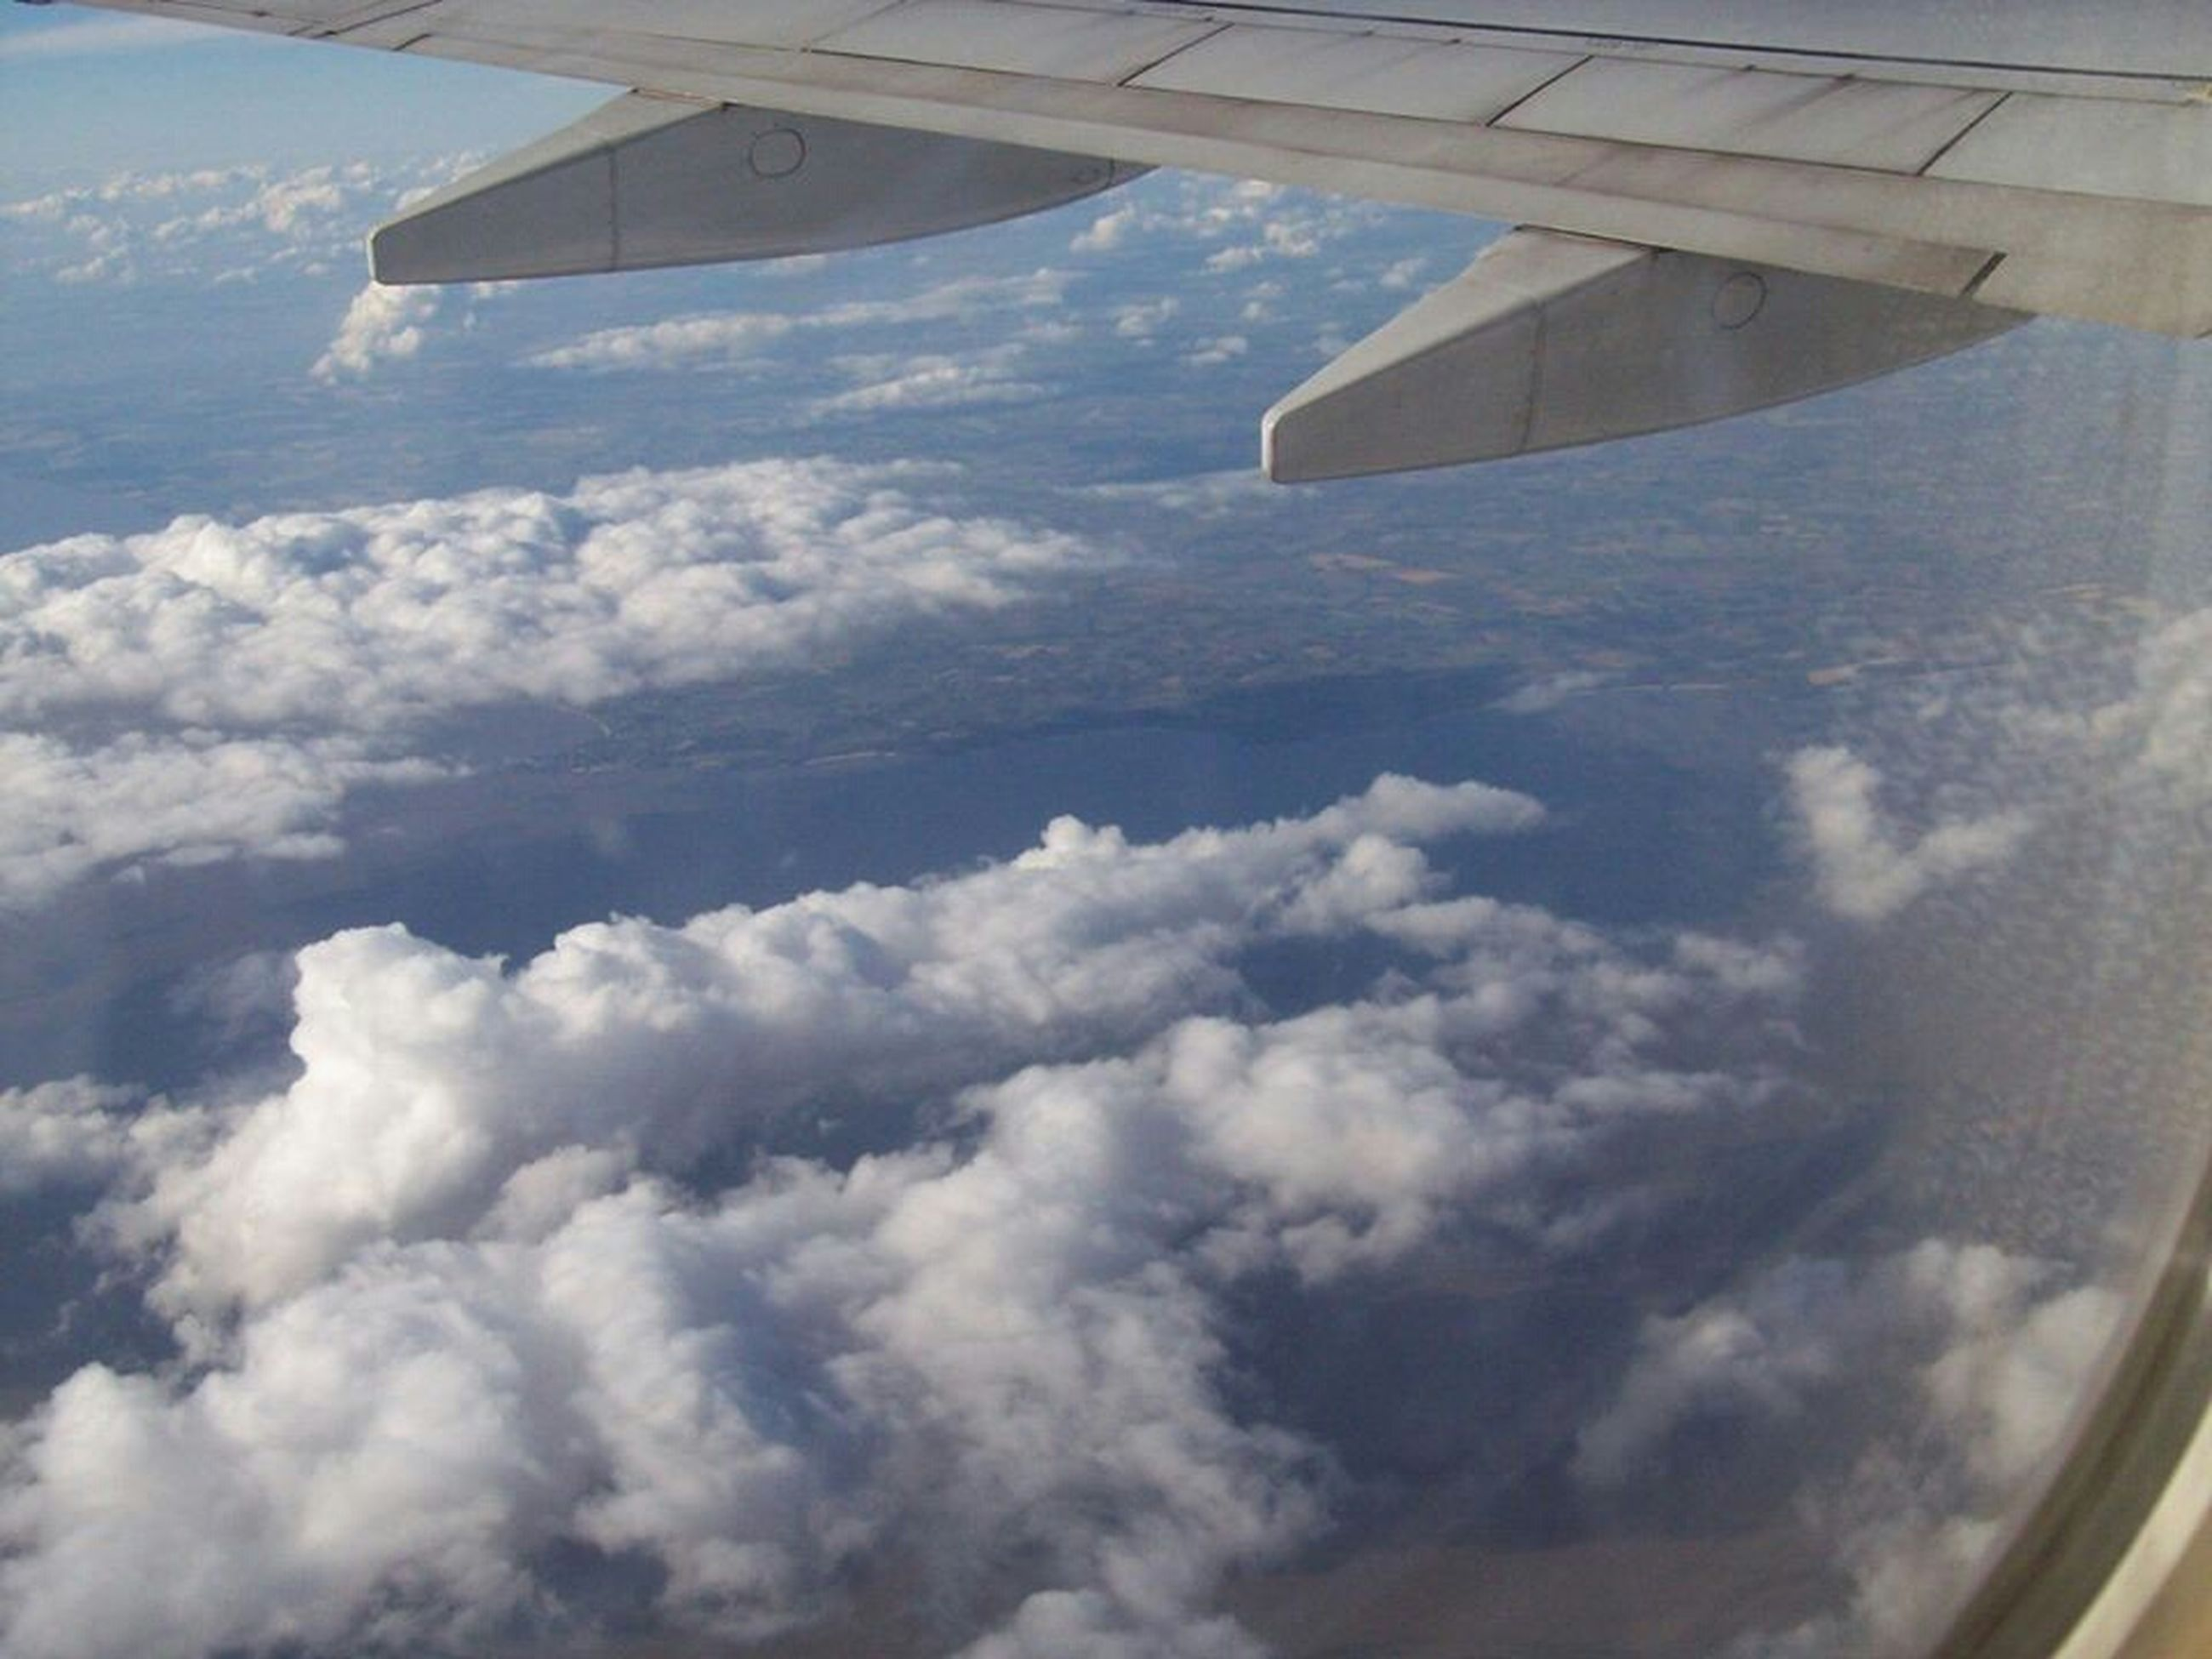 airplane, transportation, air vehicle, aircraft wing, mode of transport, part of, cropped, sky, flying, aerial view, cloud - sky, travel, scenics, nature, beauty in nature, cloud, journey, mid-air, vehicle part, cloudscape